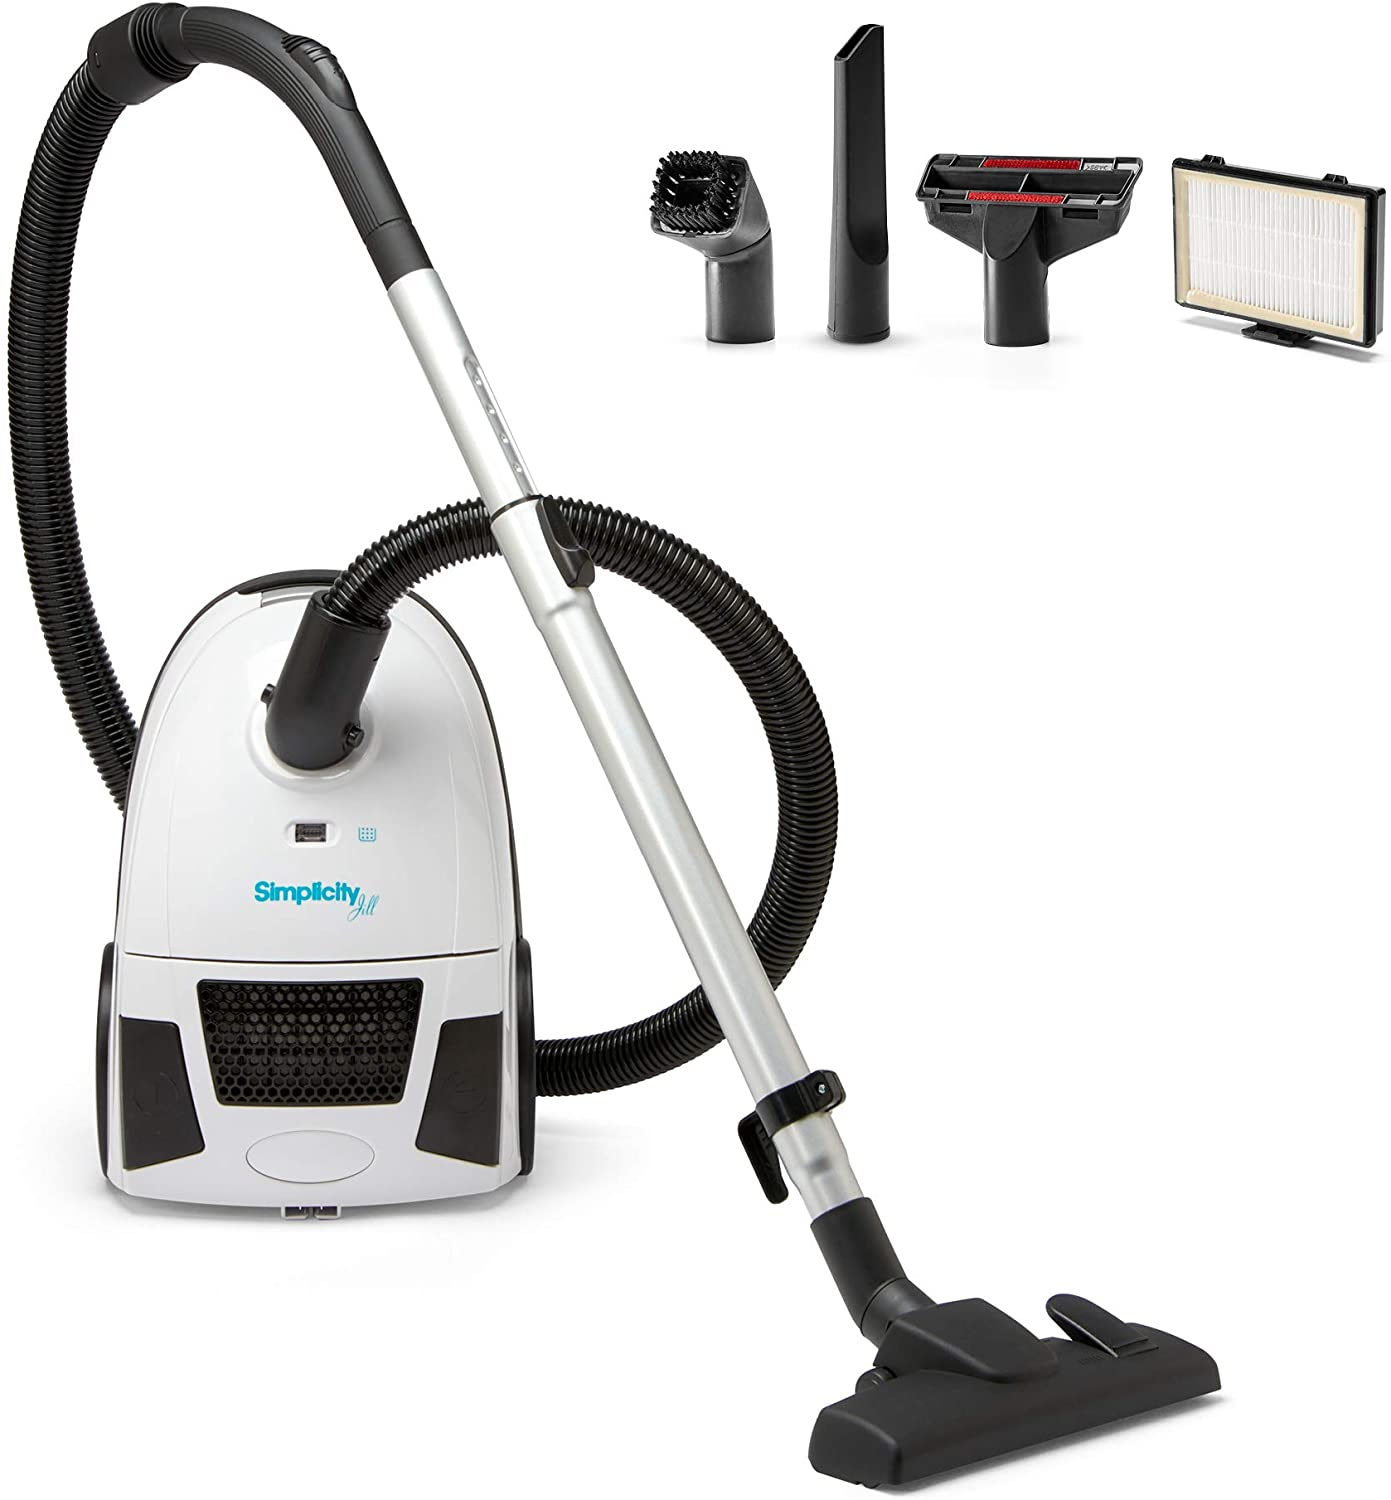 Canister Vacuum Cleaner   Simplicity Jill Compact Vacuum for Hardwood and Rugs   Dual Certified Hepa Filtration   Bagged